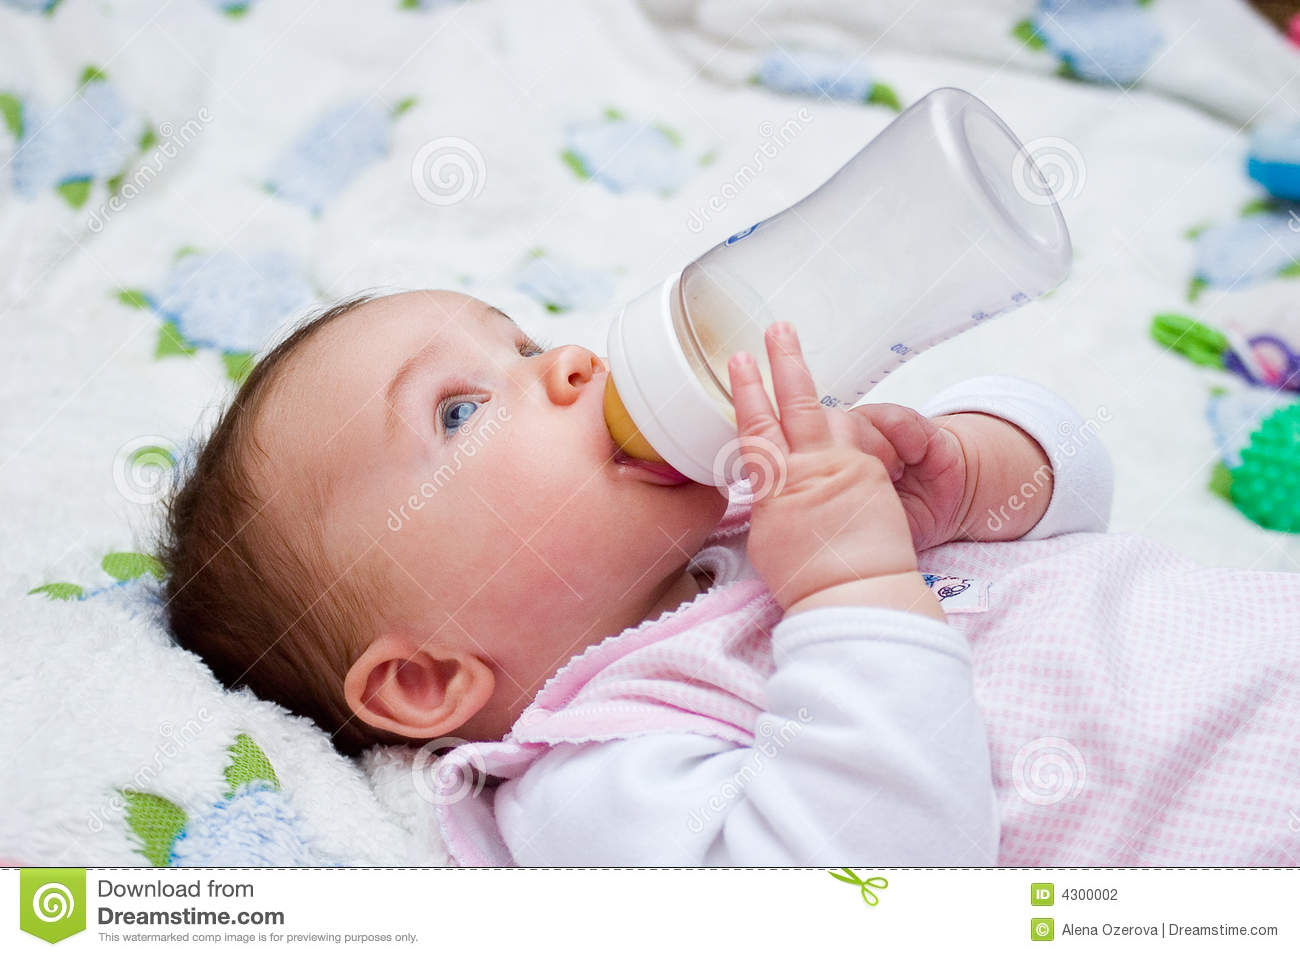 Baby Drinking Milk From Bottle Stock Photo - Image: 4300002